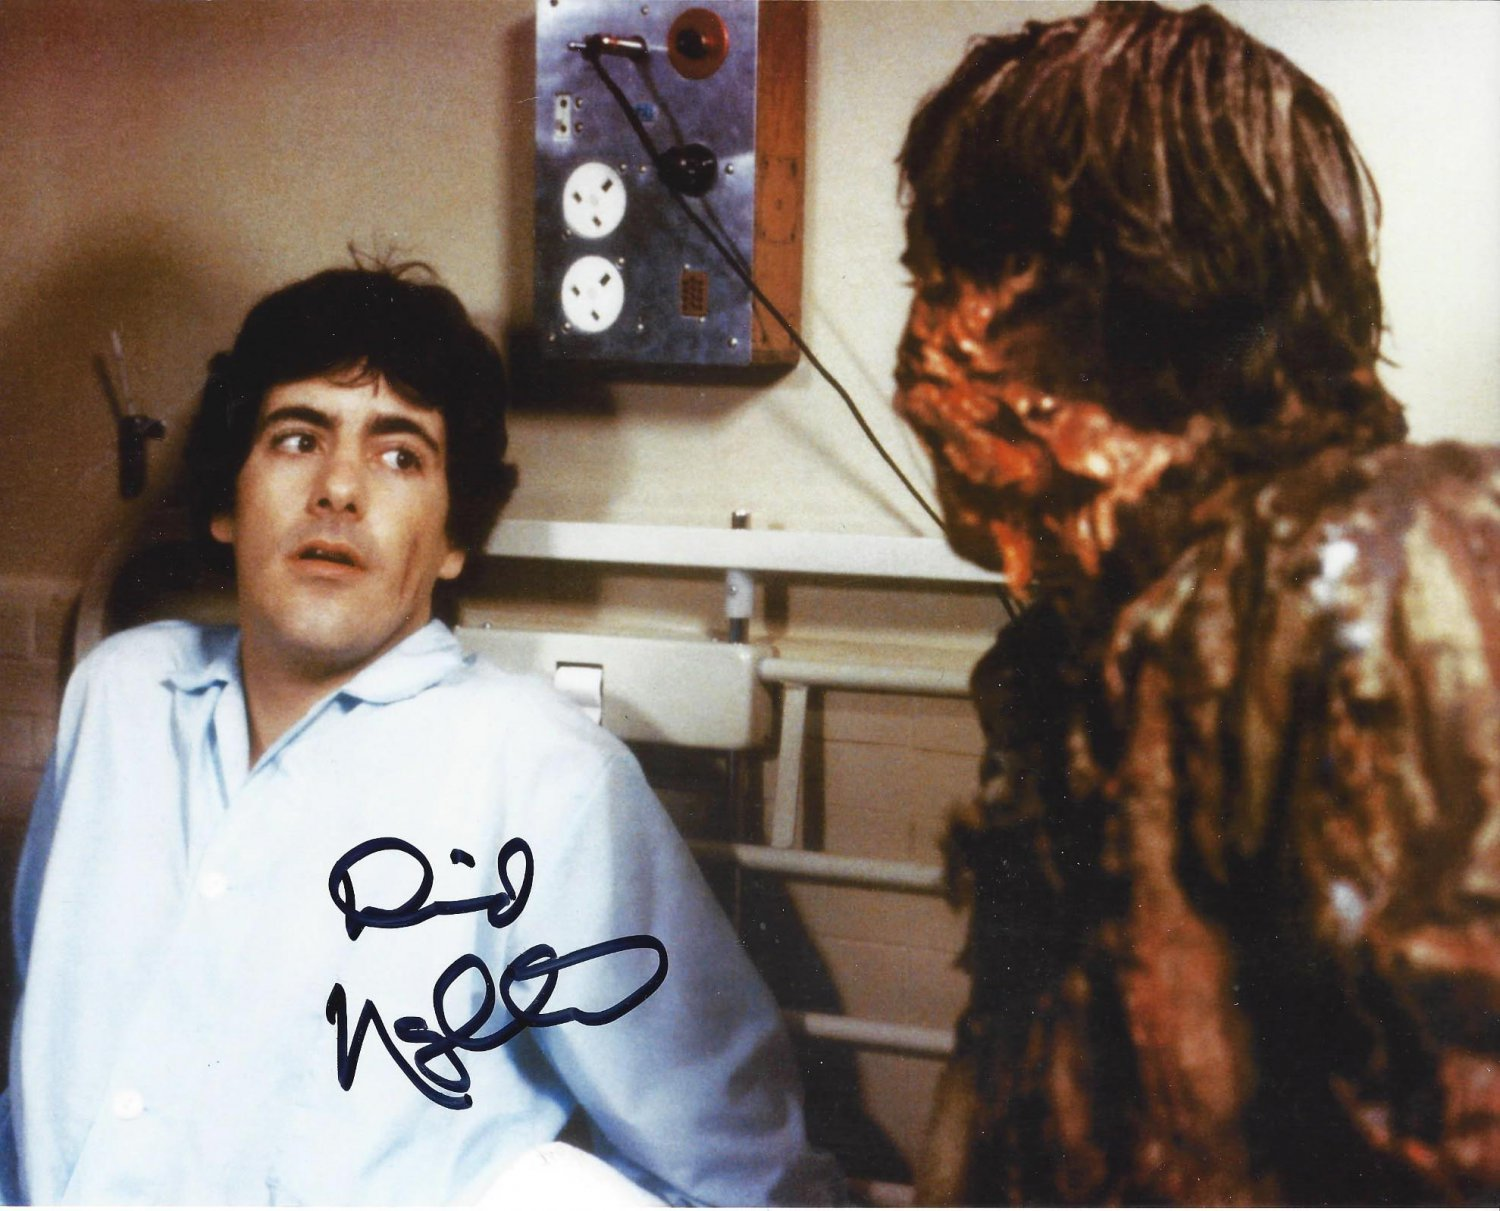 "David Naughton An American in London 8 X 10"" Autographed Photo (Ref:00000169)"